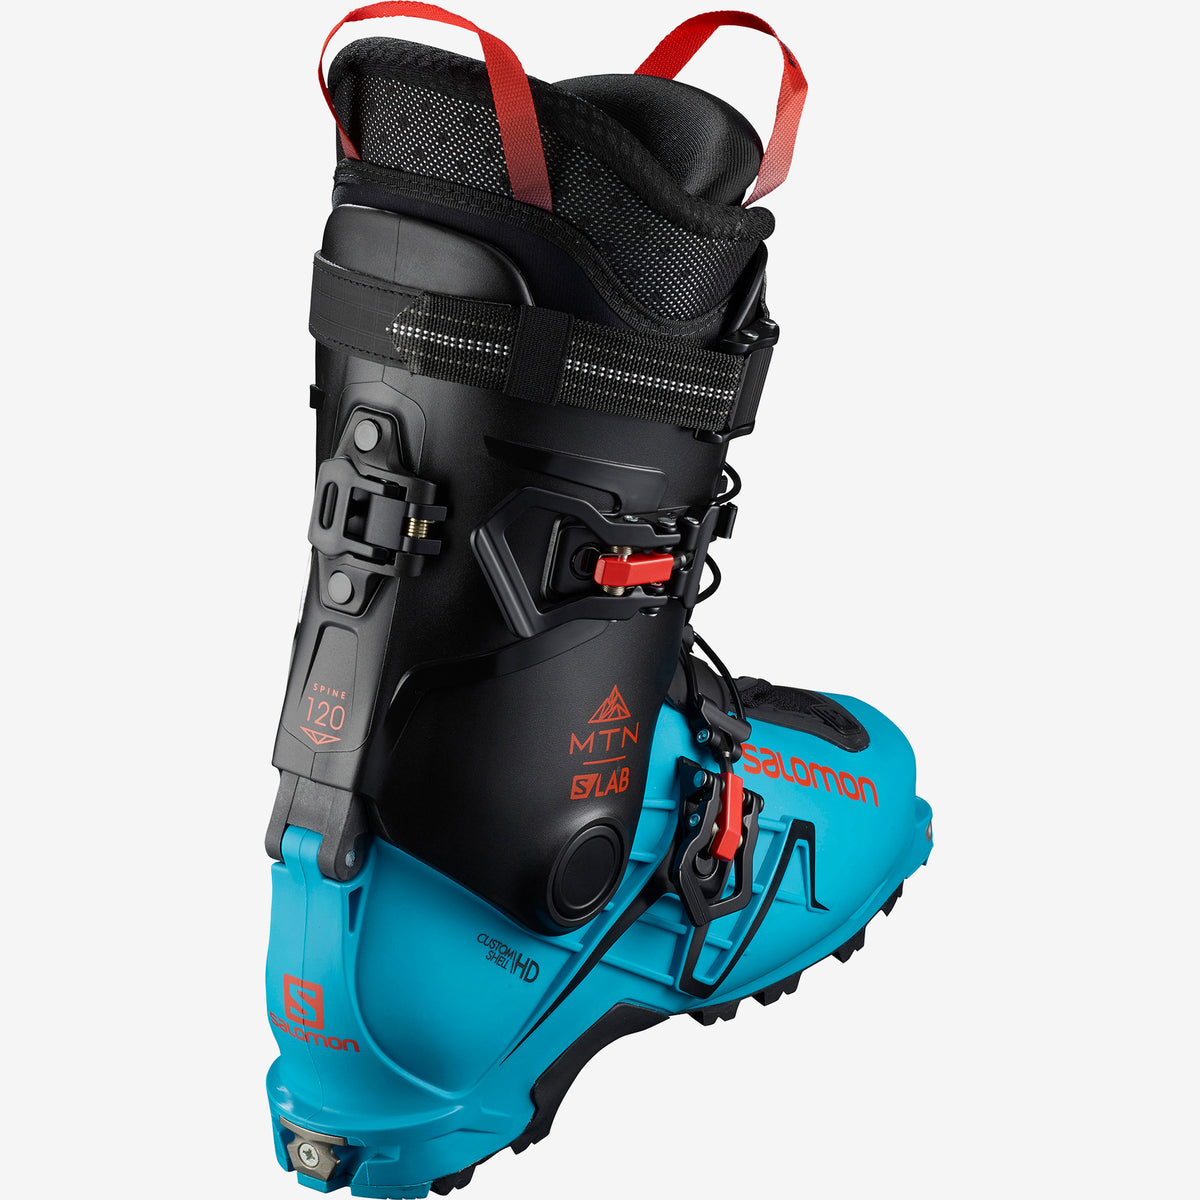 Salomon S/LAB MTN Ski Boots 2021